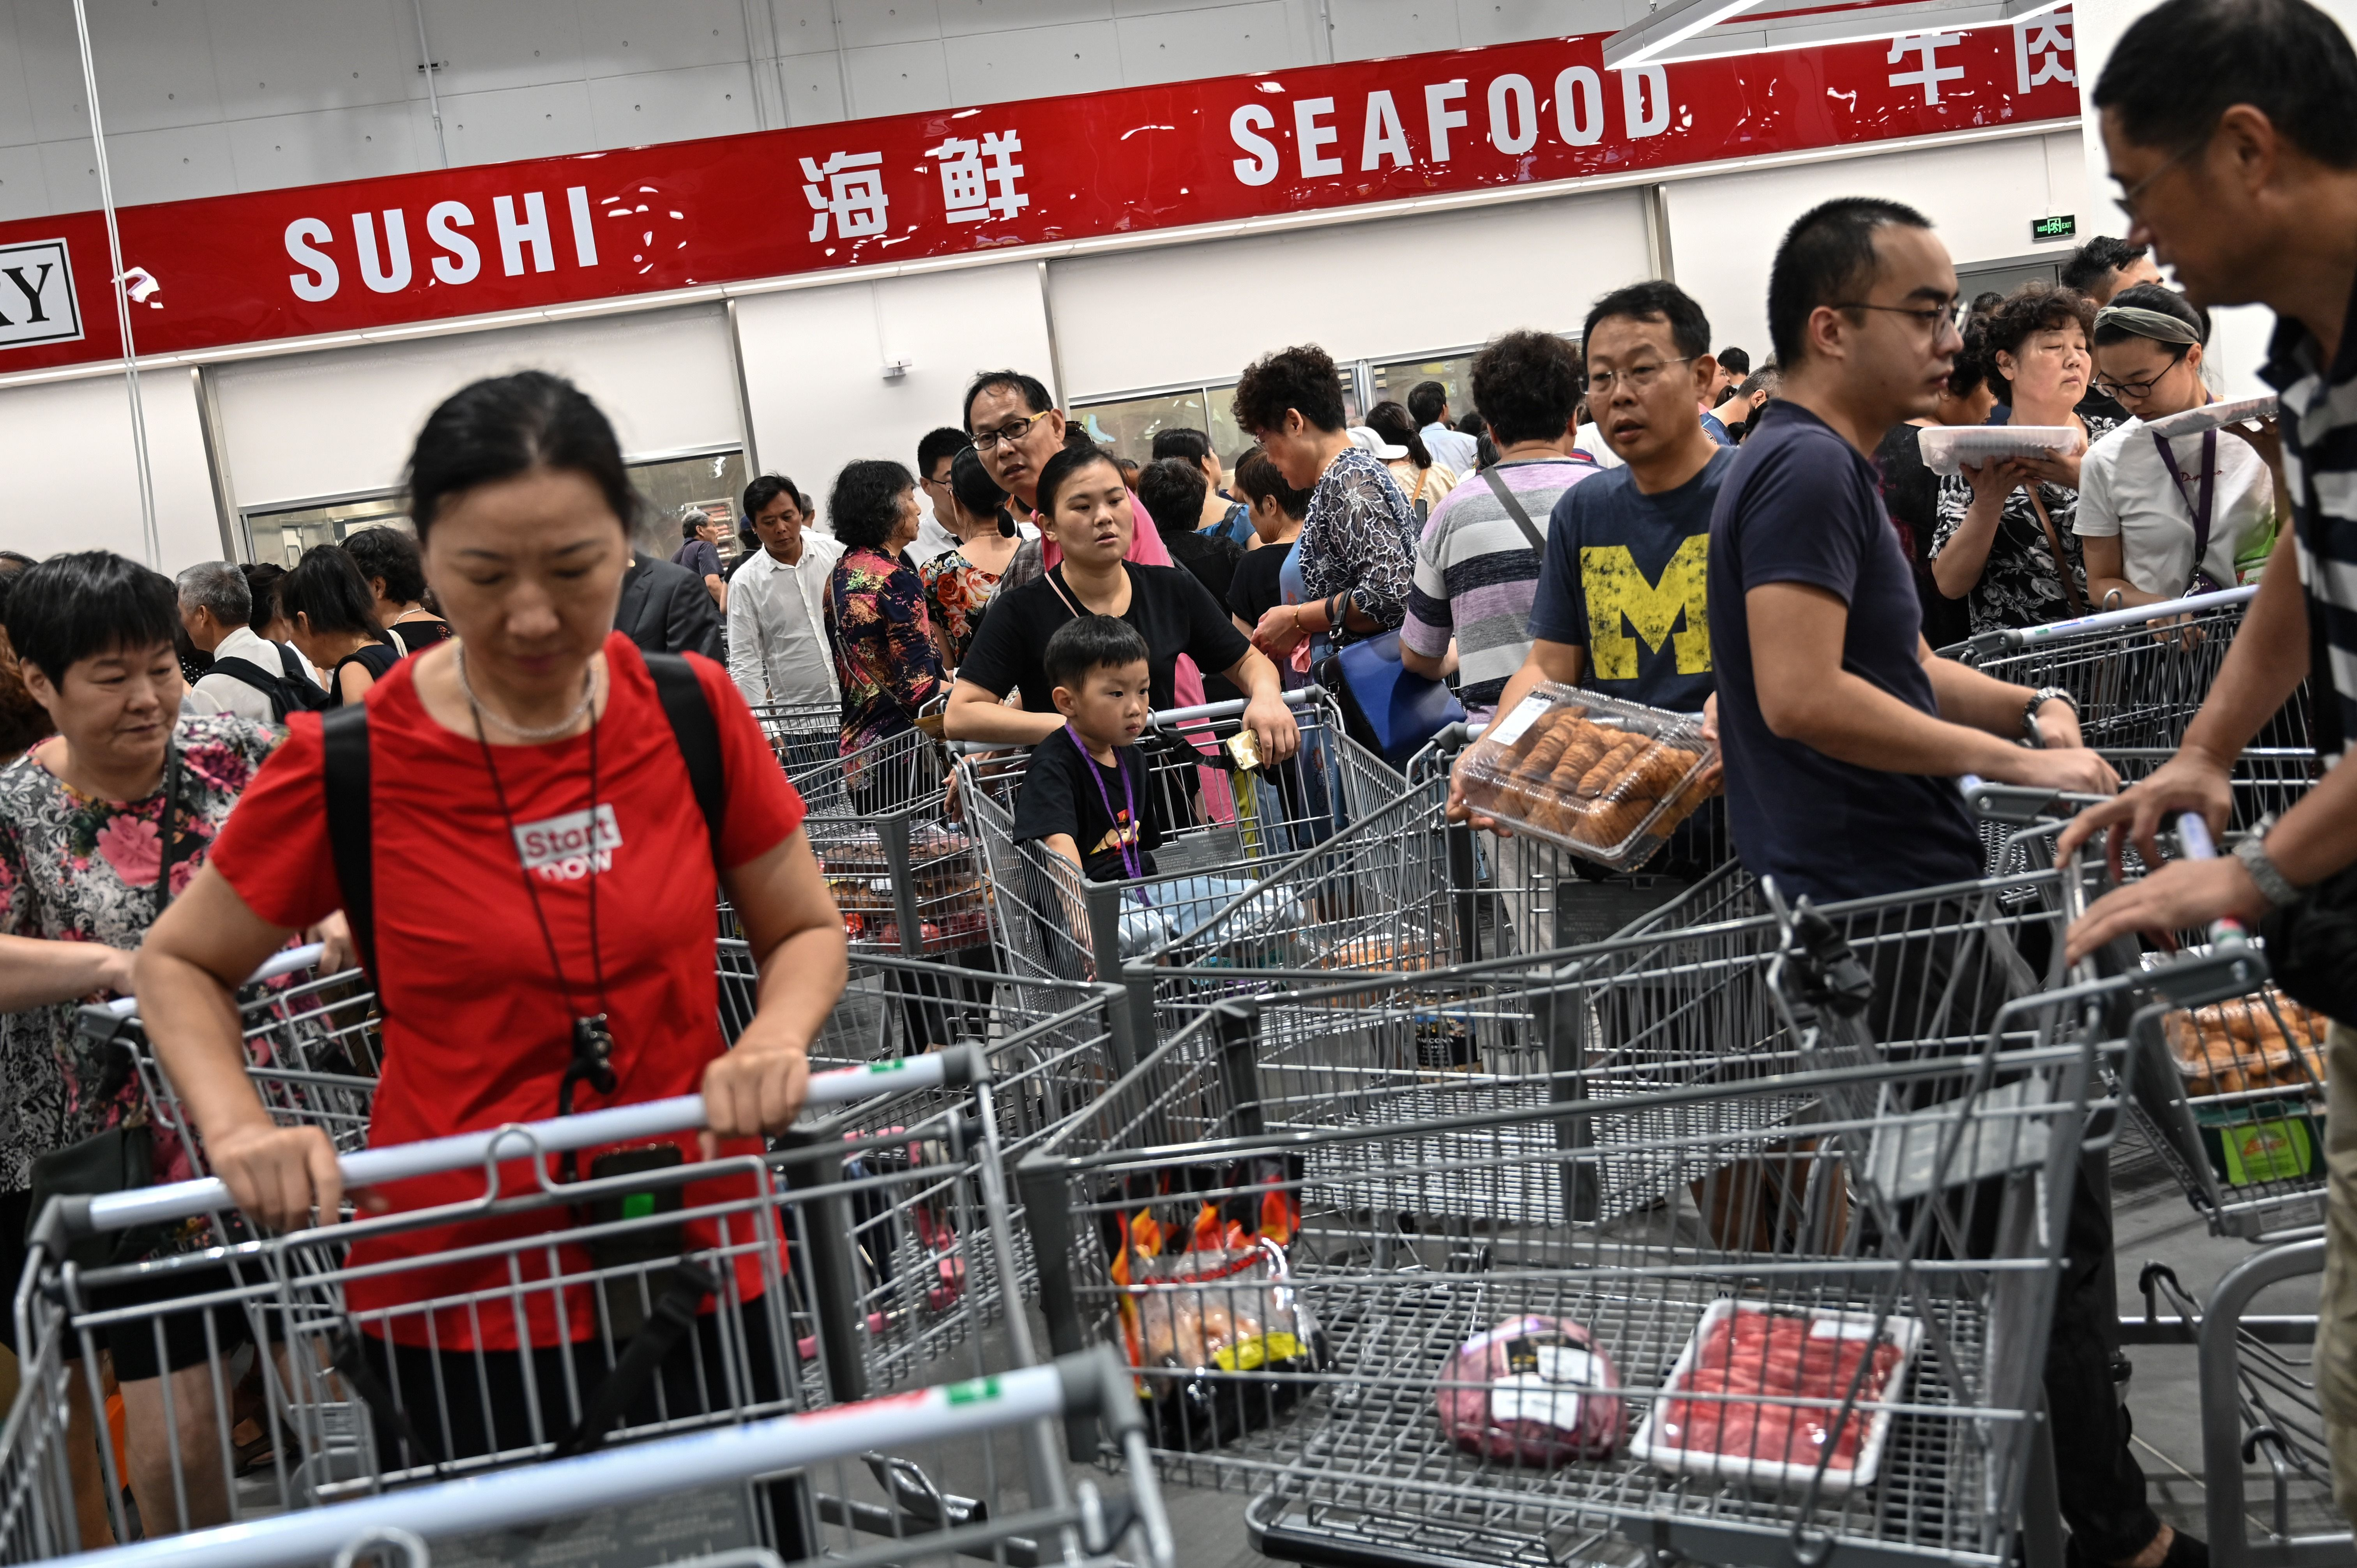 People visit the first Costco outlet in China, on the stores opening day in Shanghai on August 27, 2019. -